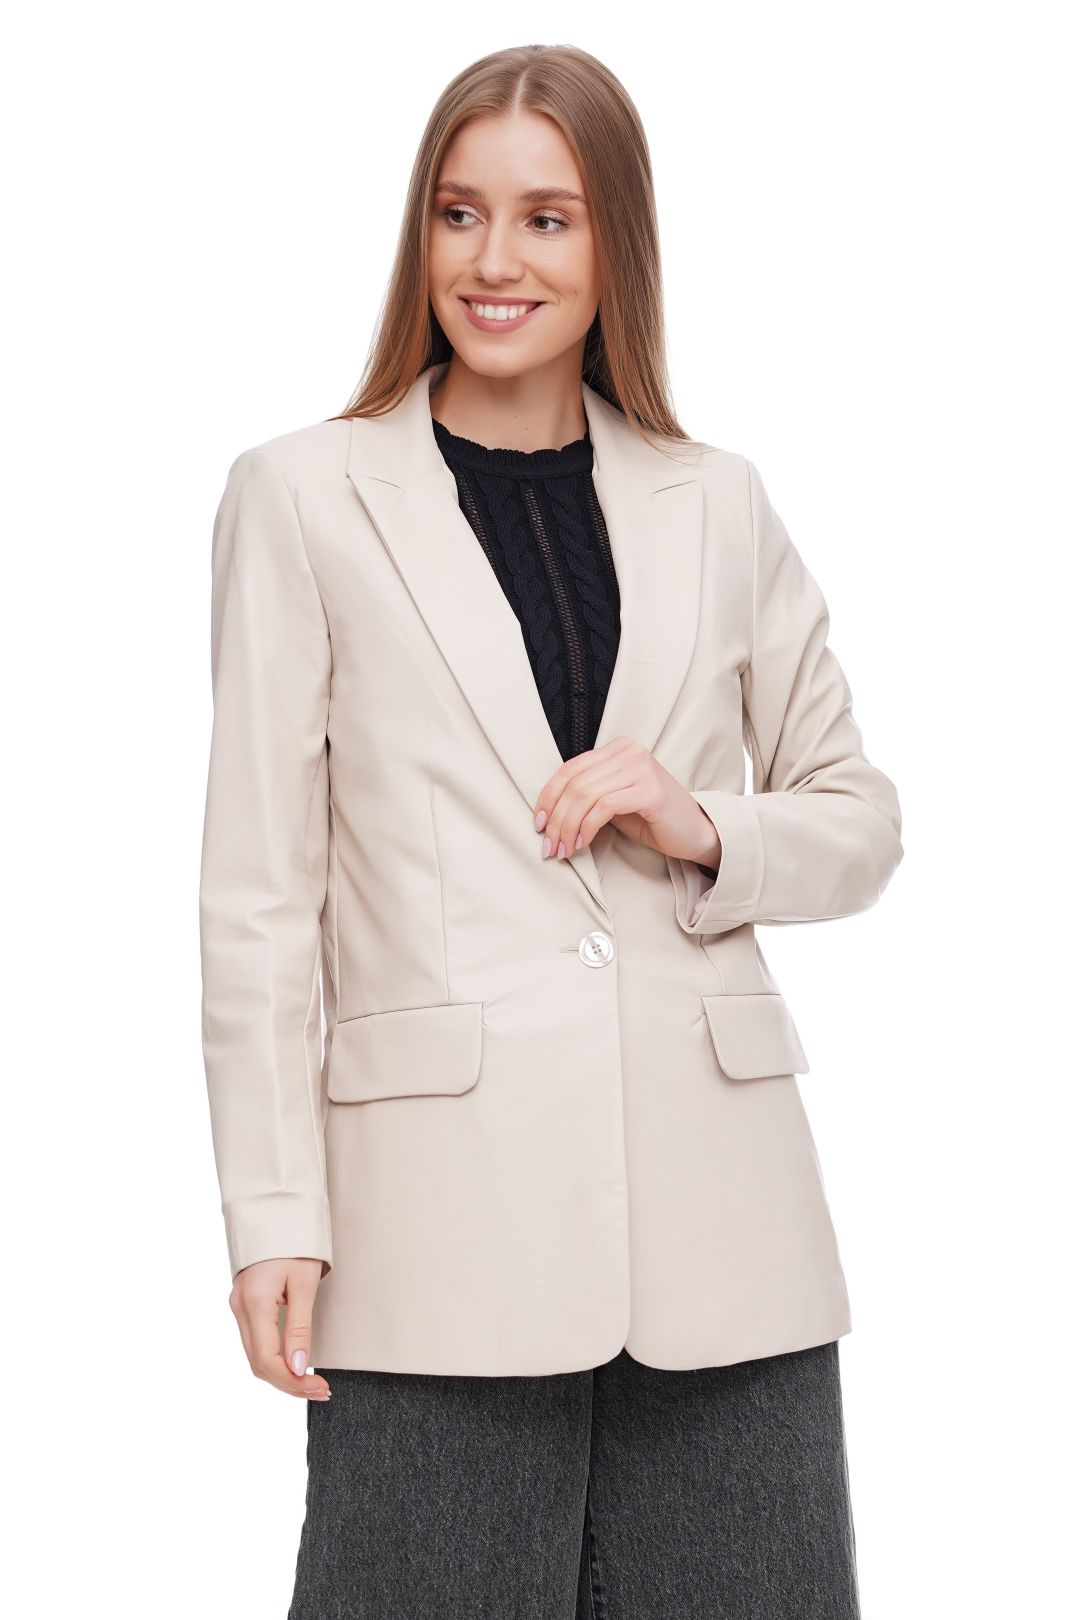 Leder Optik Blazer ANGELA DAVIS